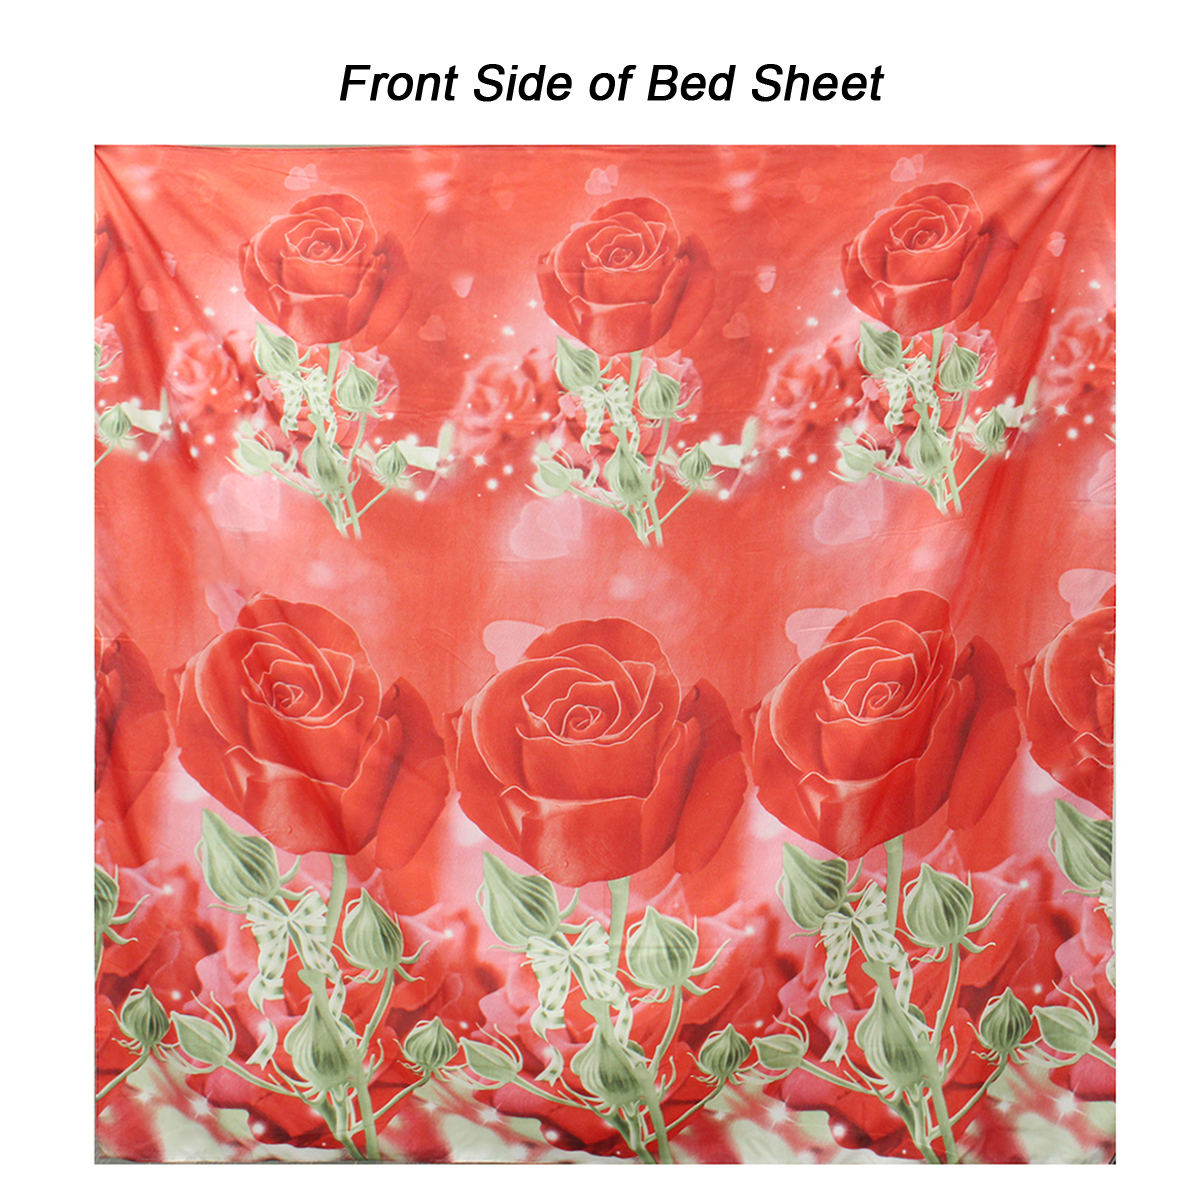 4Pcs 3D Rose Printed Bedding Sets Quilt Cover Bed Sheet Pillowcases Duvet Cover